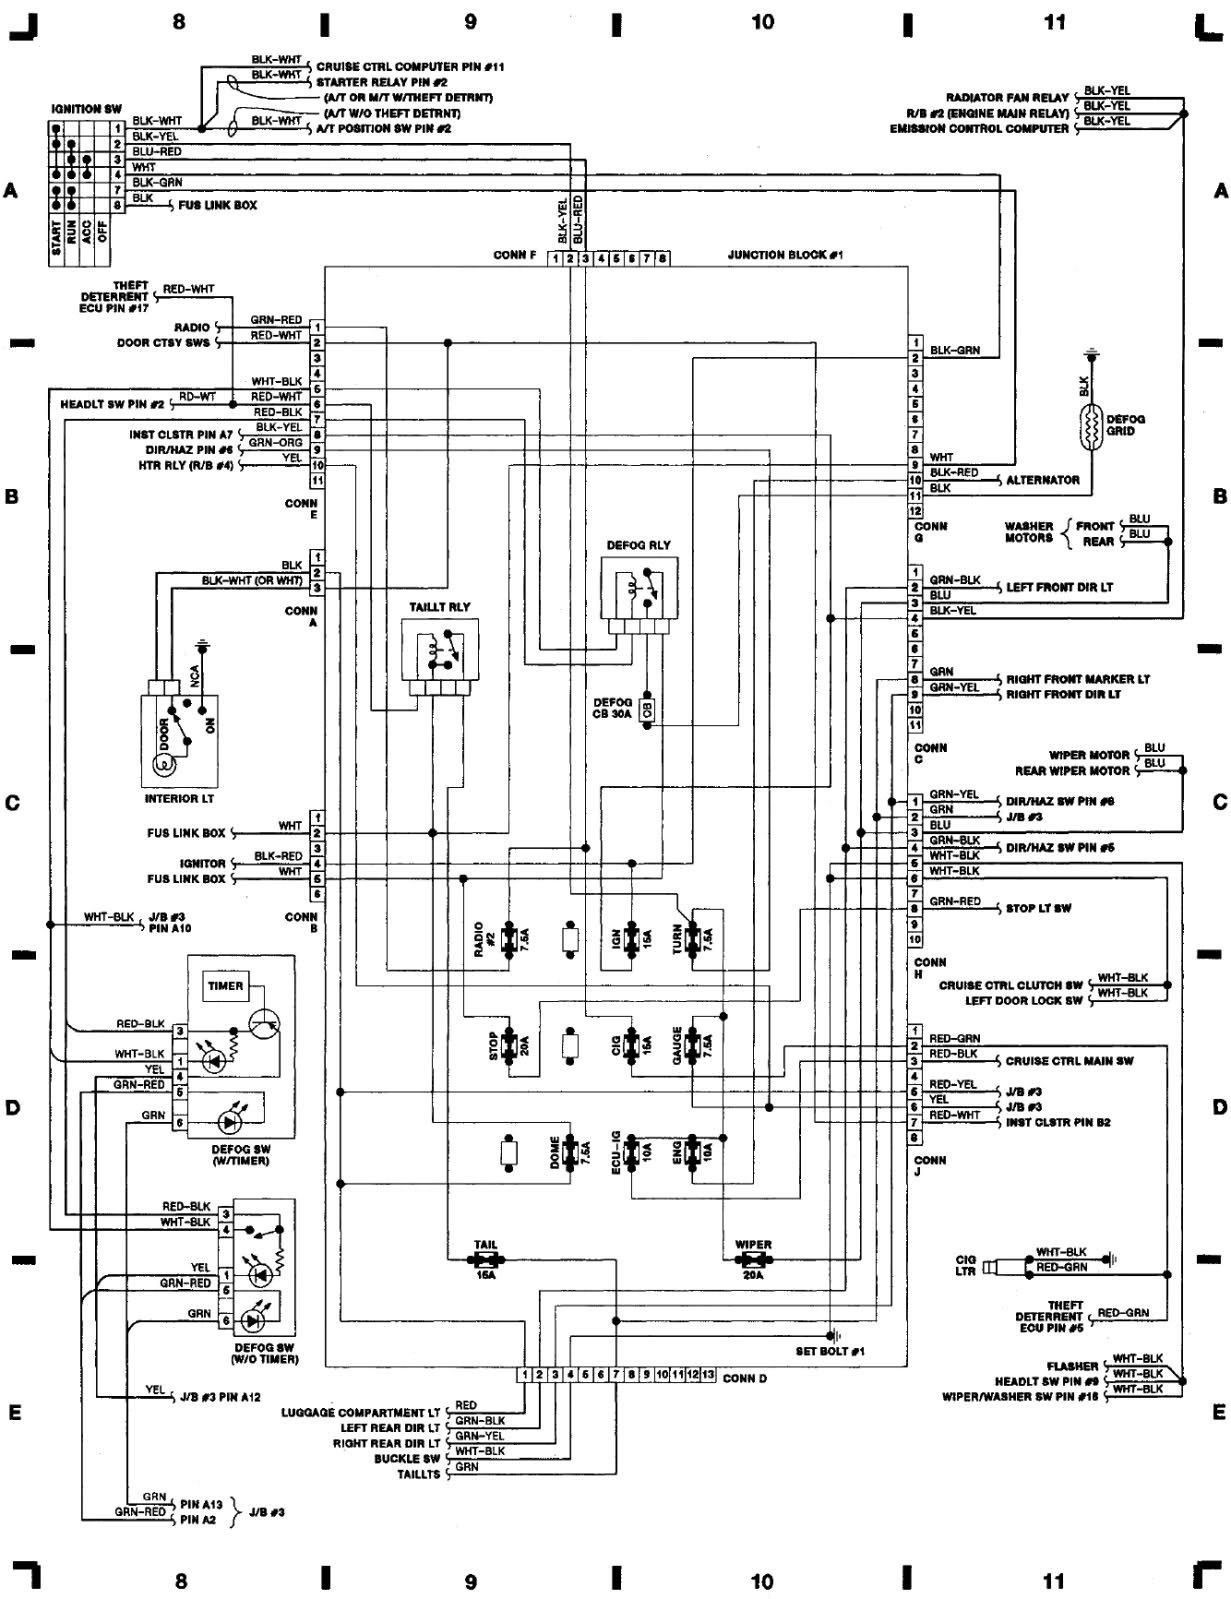 Toyota Celica Engine Diagram Echo Wiring Diagram Of Toyota Celica Engine Diagram toyota 7afe Engine Diagram Wiring Diagram Used